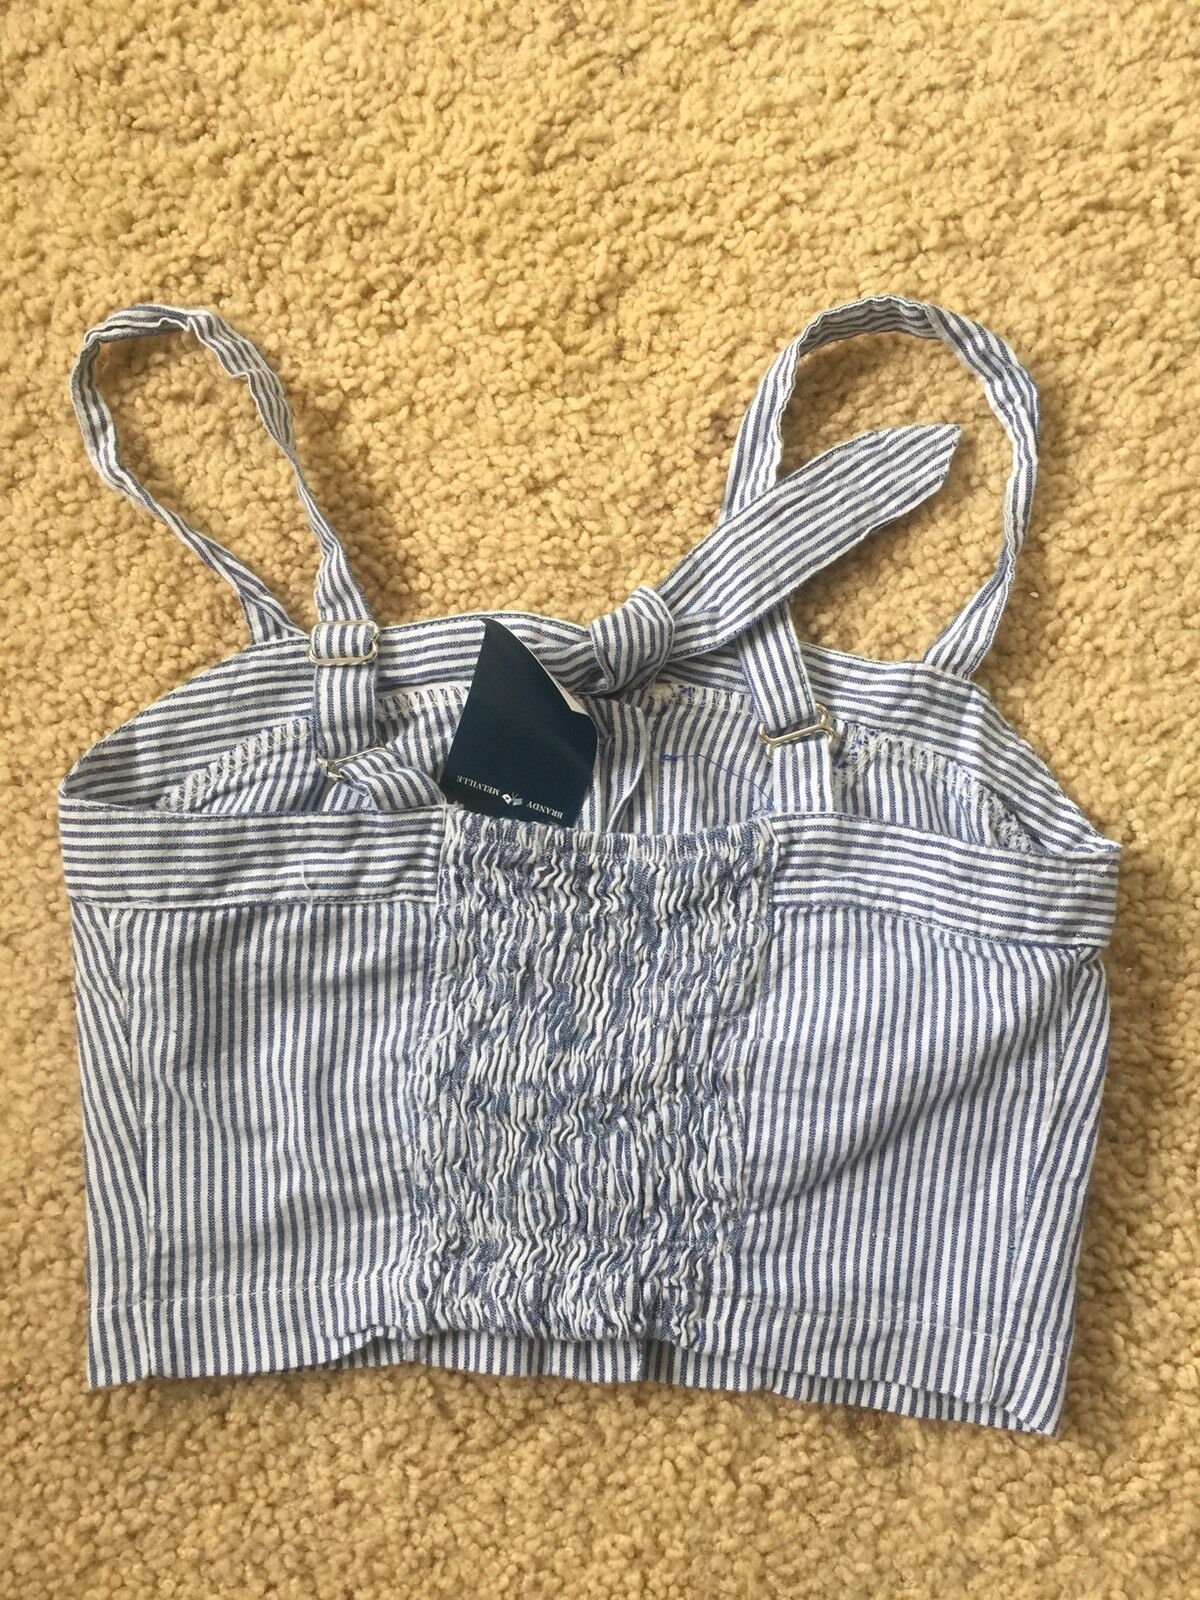 f1f5408d Brandy Melville Navy/green Plaid Tie Front Button up Lily Tank Top S/m for  sale online | eBay